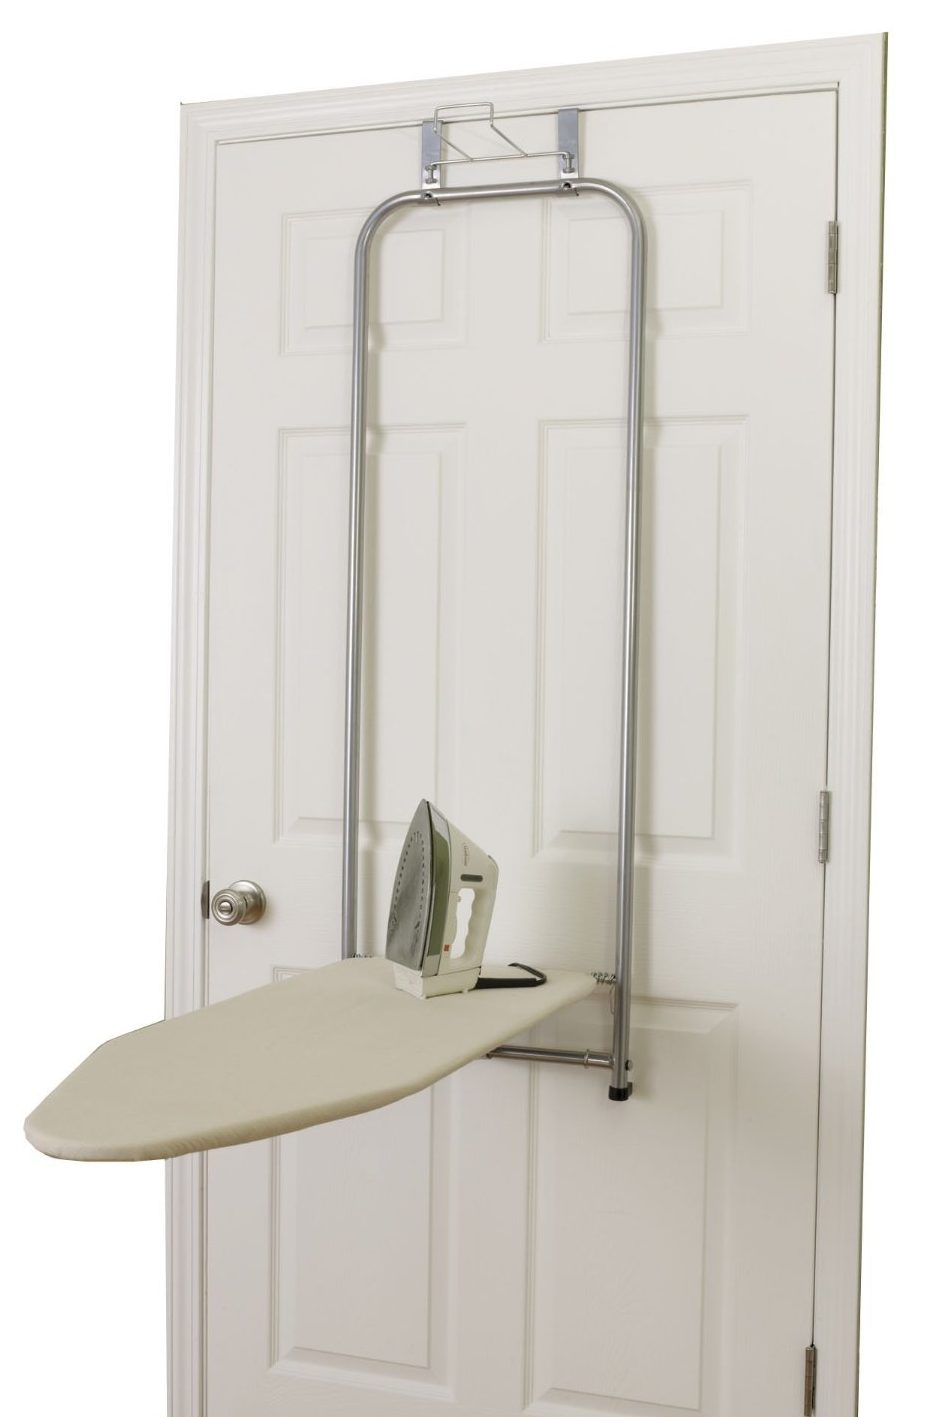 Over The Door Ironing Board Reviews 2 Top Rated Models